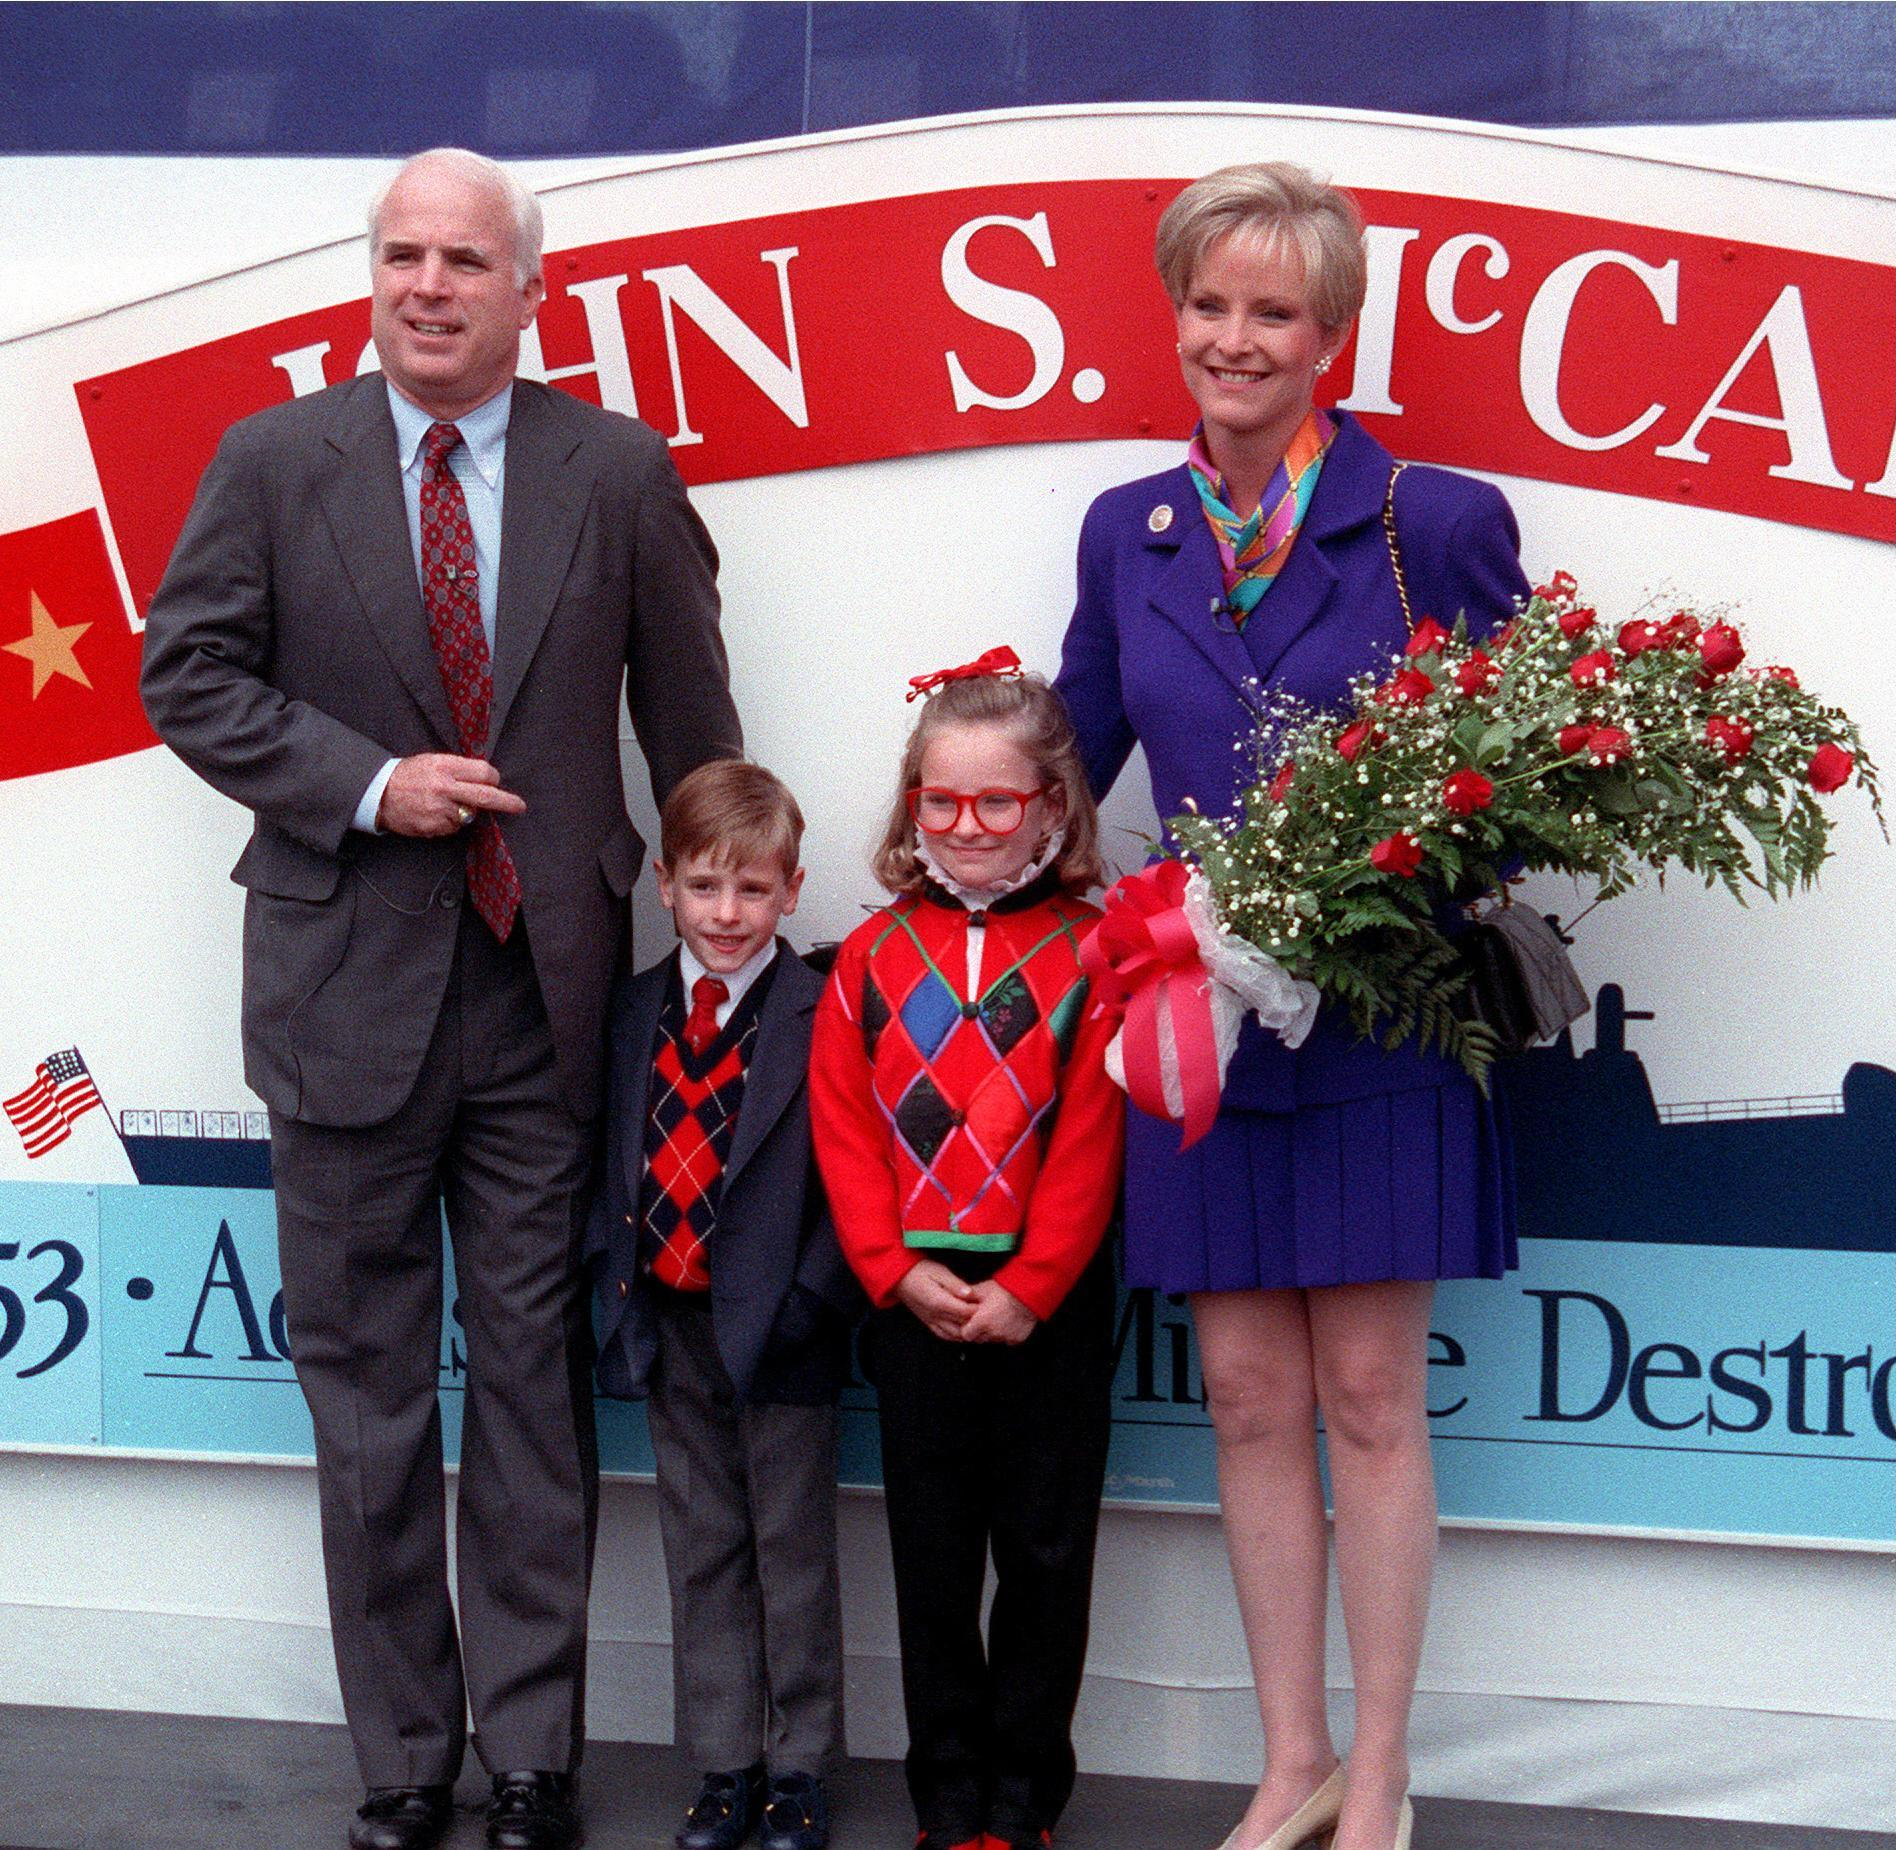 What Size Is Meghan Mccain: Wikimedia Commons